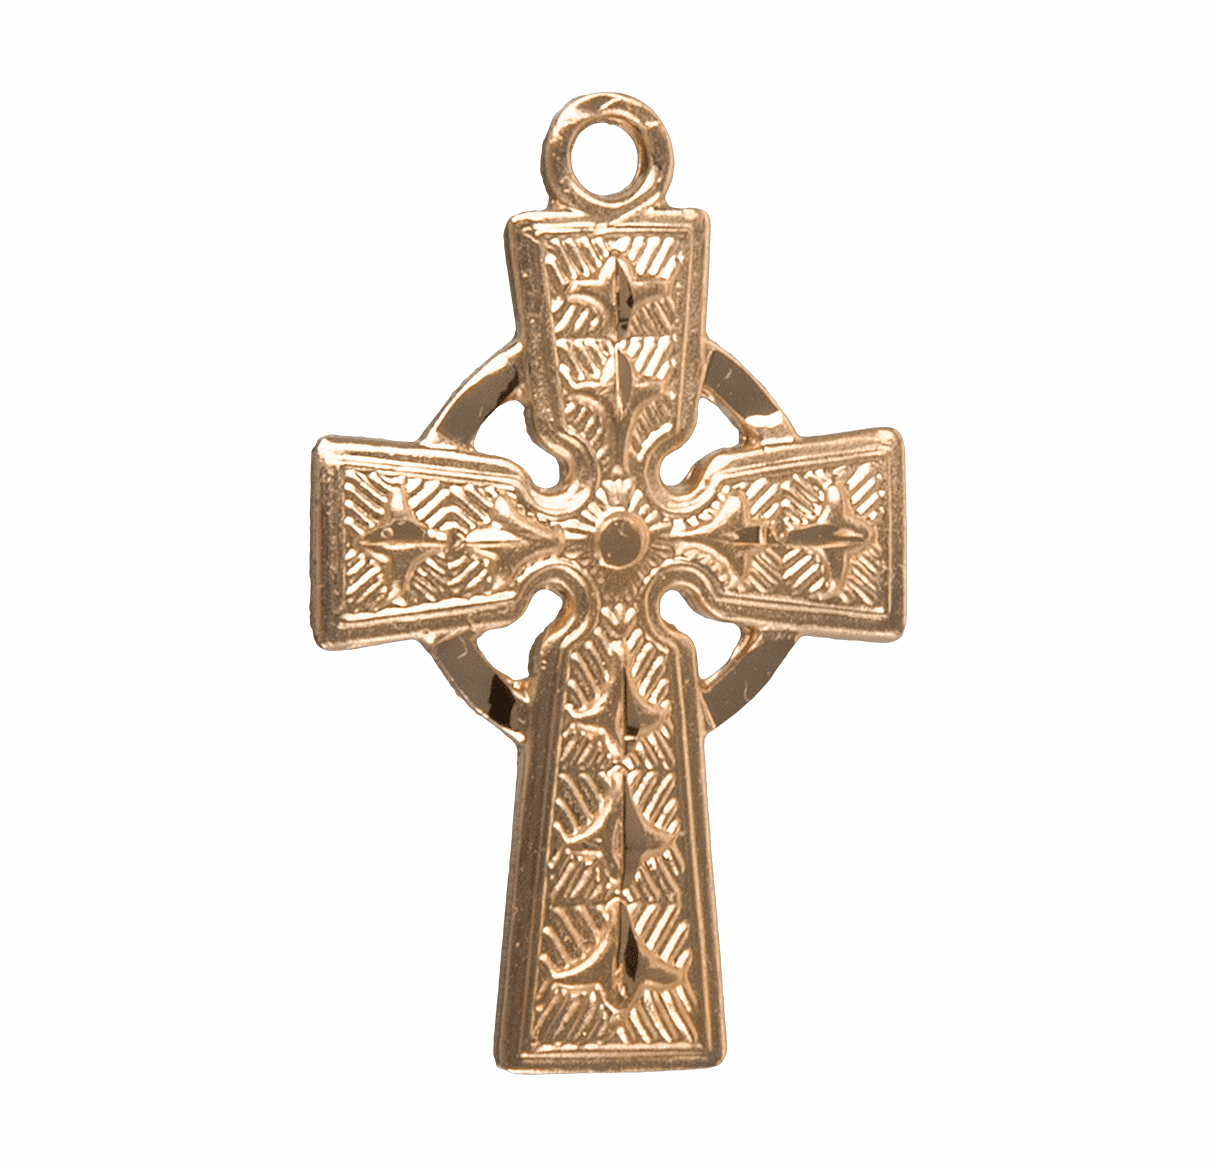 HMH Religious Celtic Irish Celtic Jewelry and Gifts